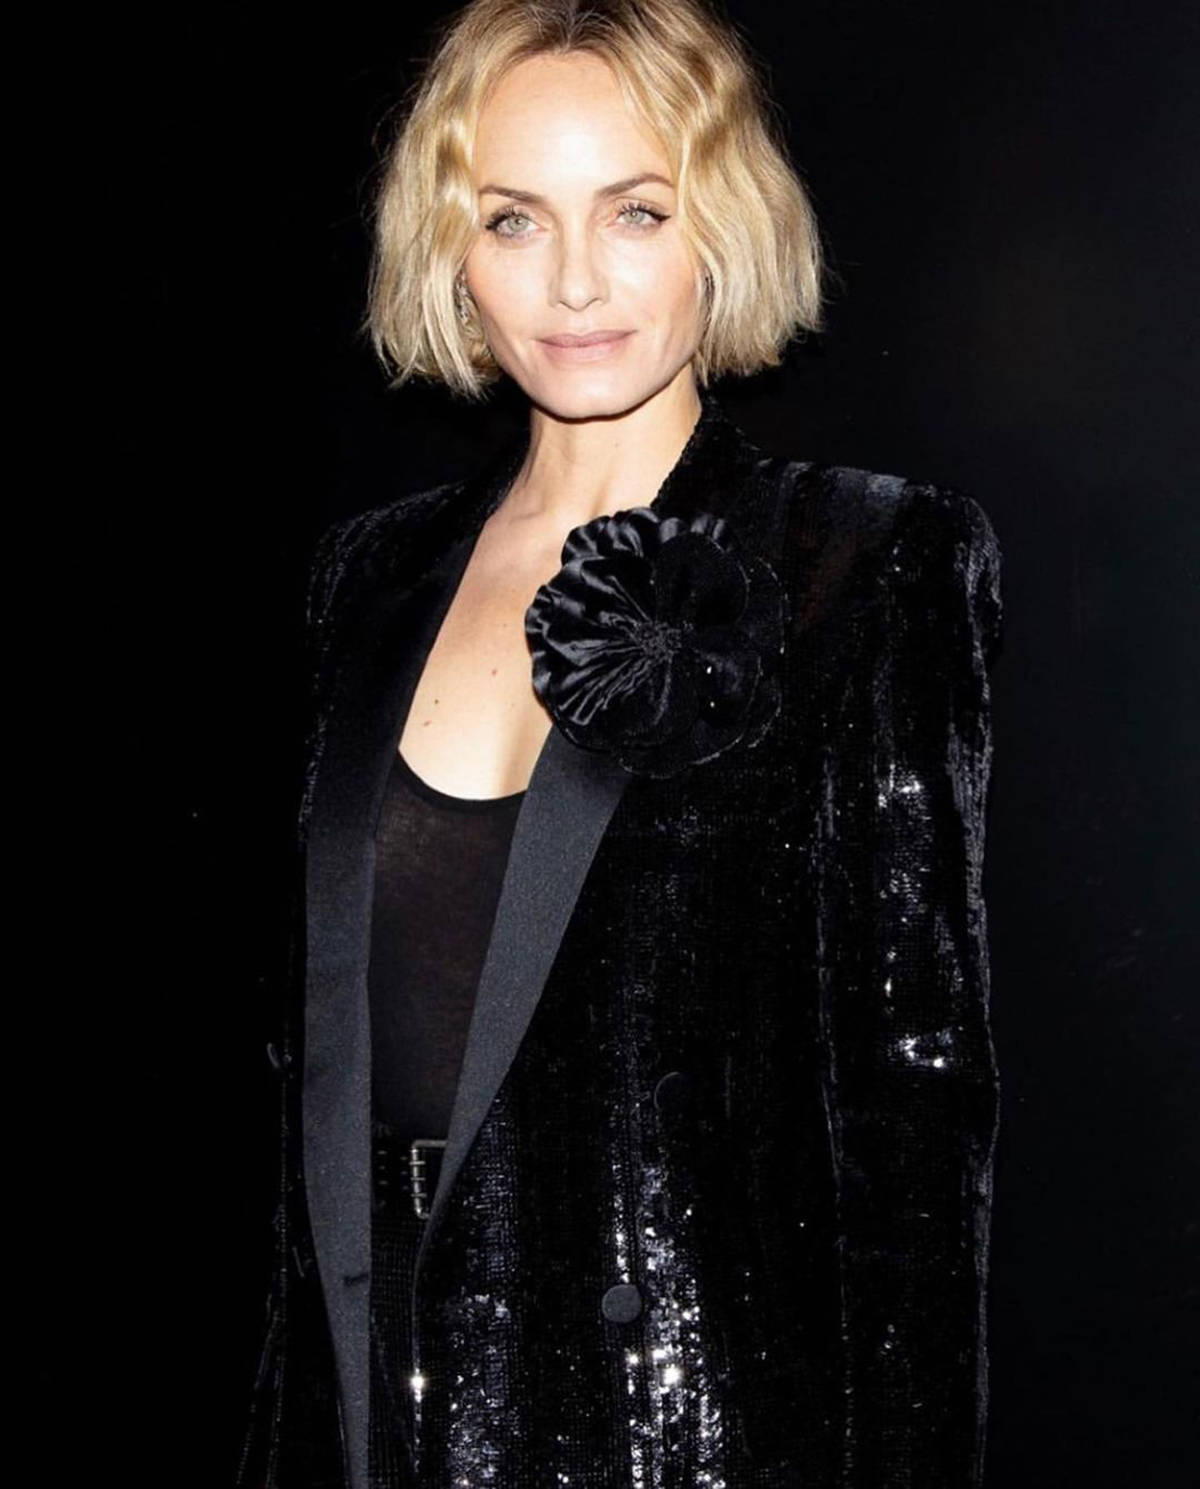 American model Amber Valletta fights for ocean's seafood contamination